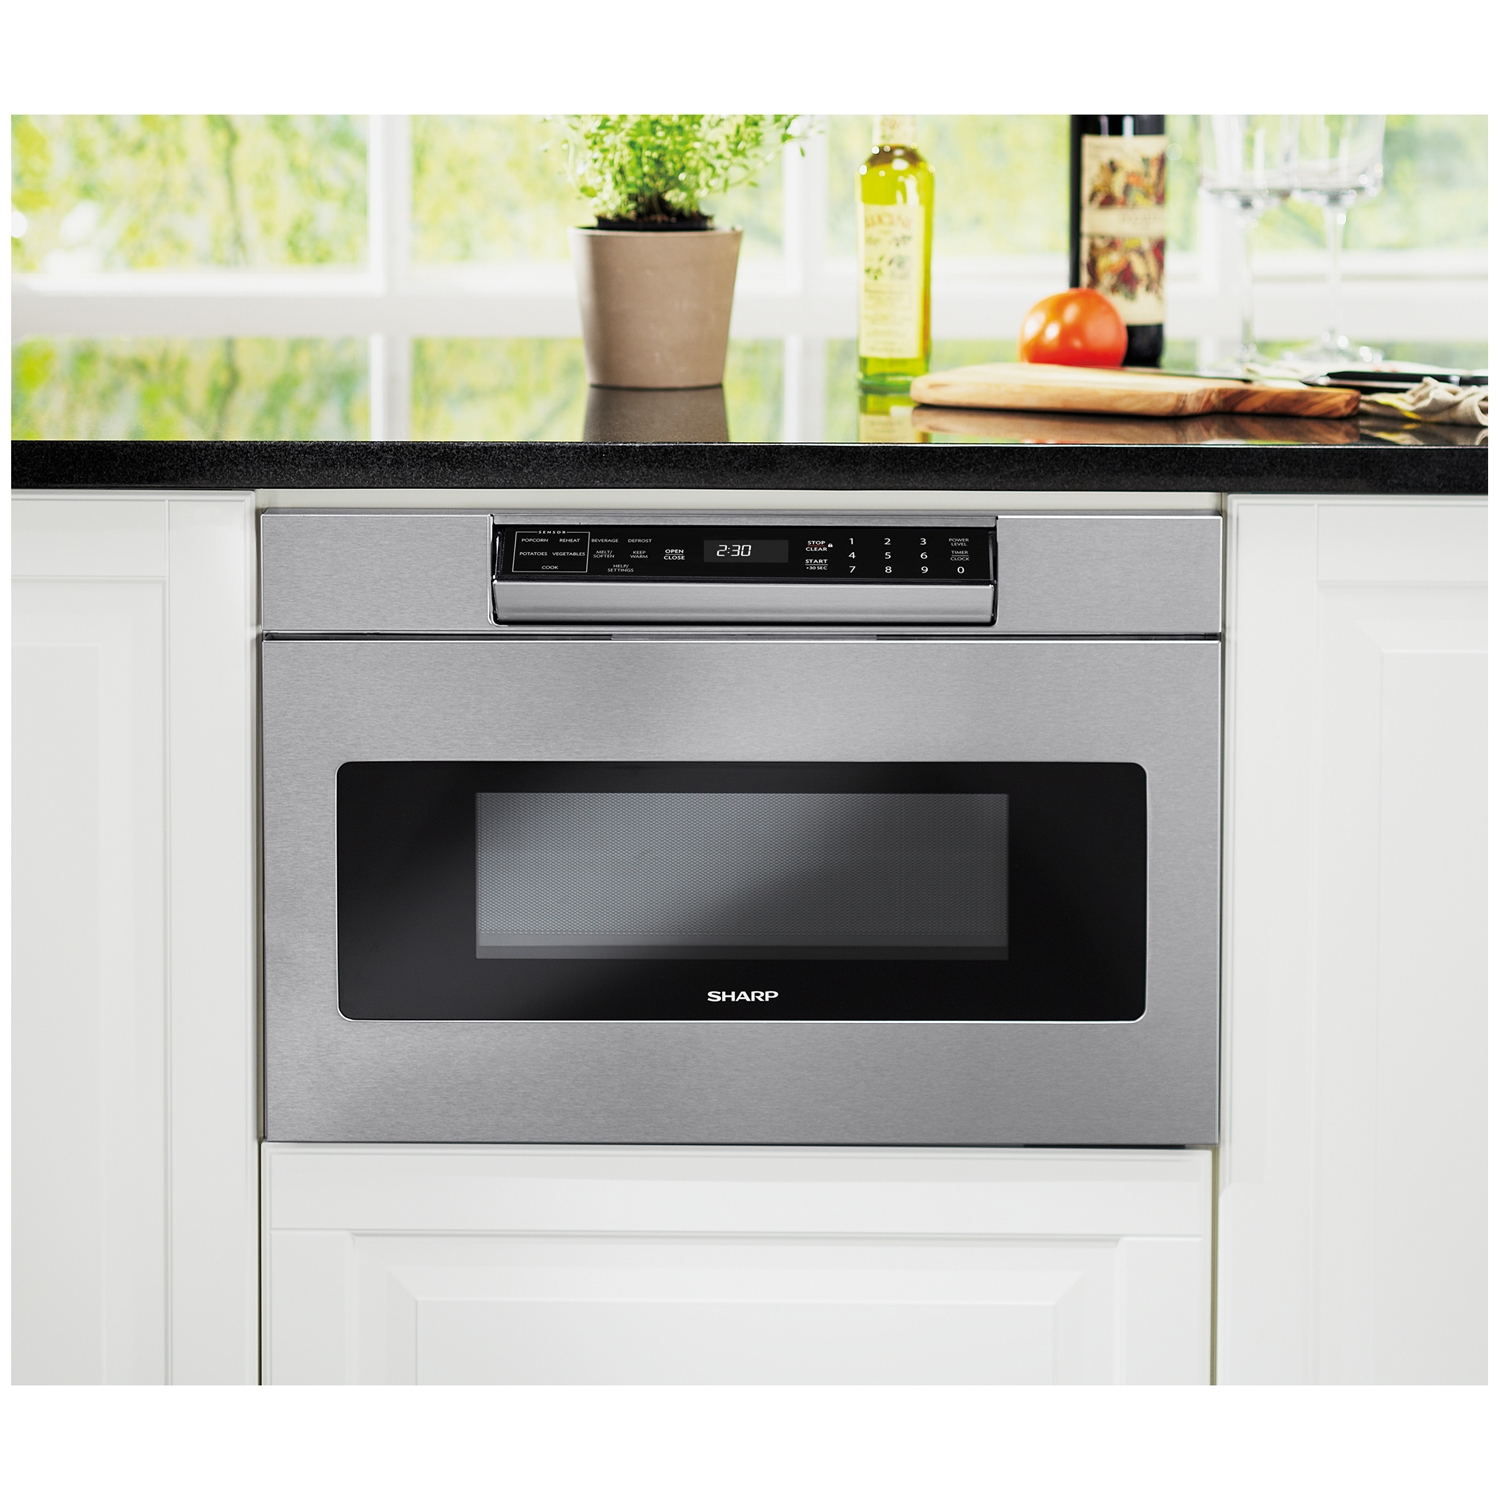 Under Counter Microwave For Easier Works: Recommended Microwave Drawers For Your Kitchen